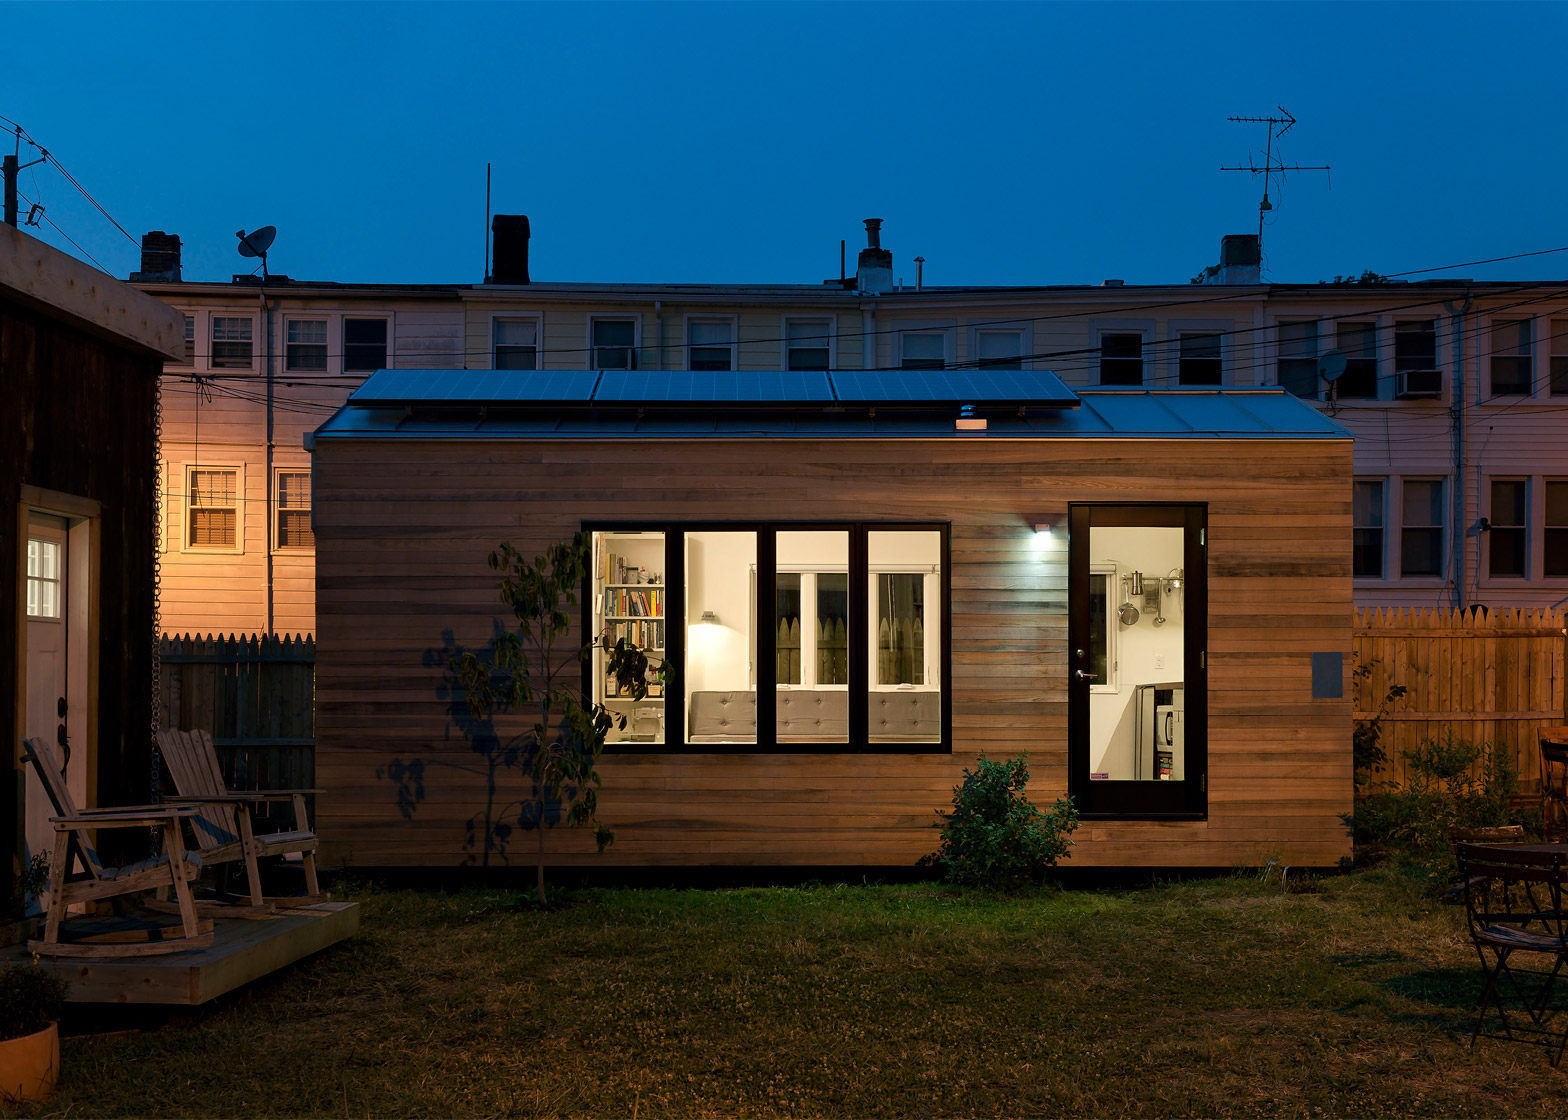 Plans for tiny house by Foundry Architects made available for purchase